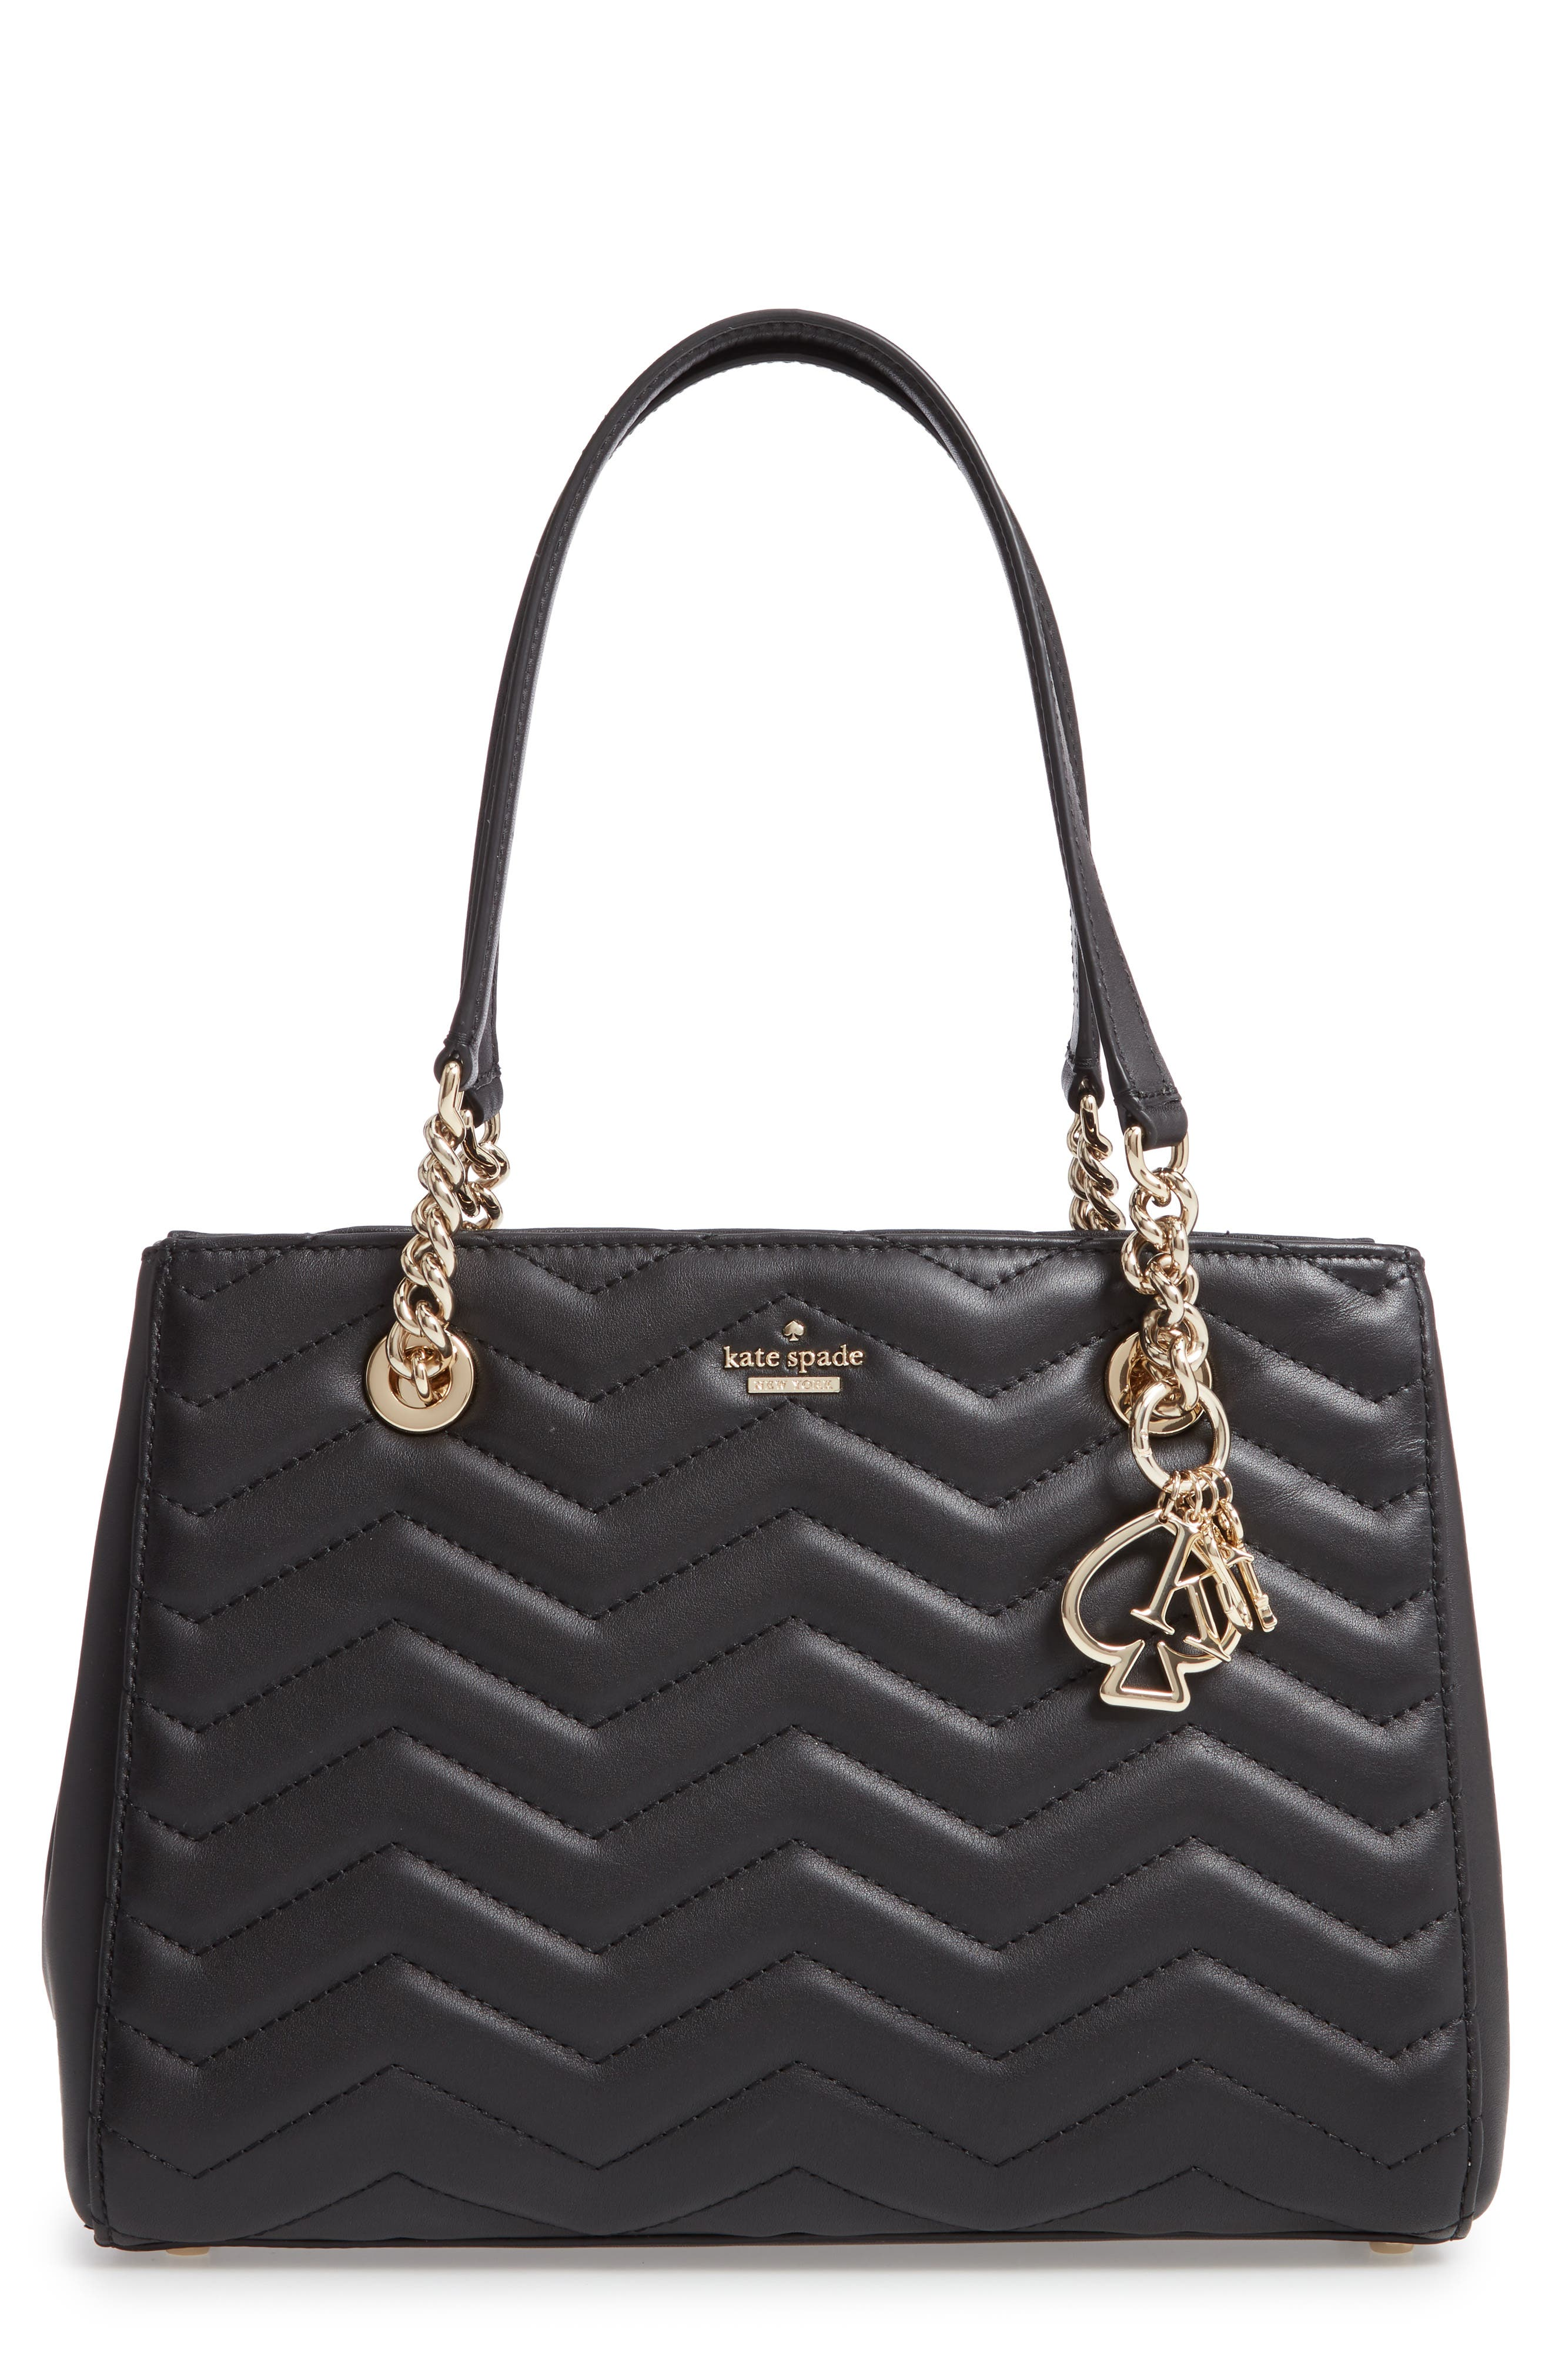 reese park - small courtnee leather tote,                             Main thumbnail 1, color,                             001